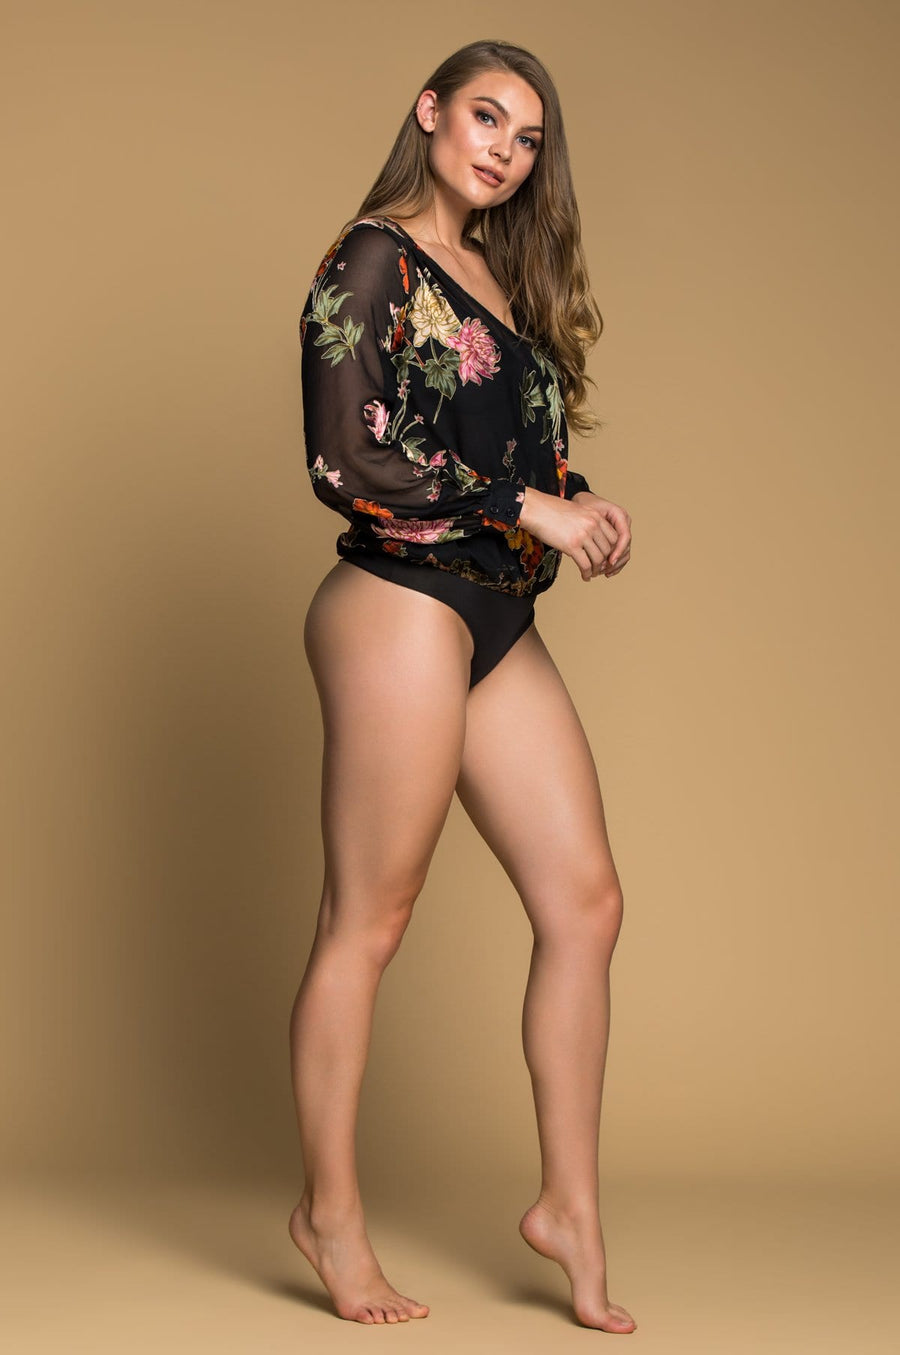 'Sherrie' Floral Body Suit